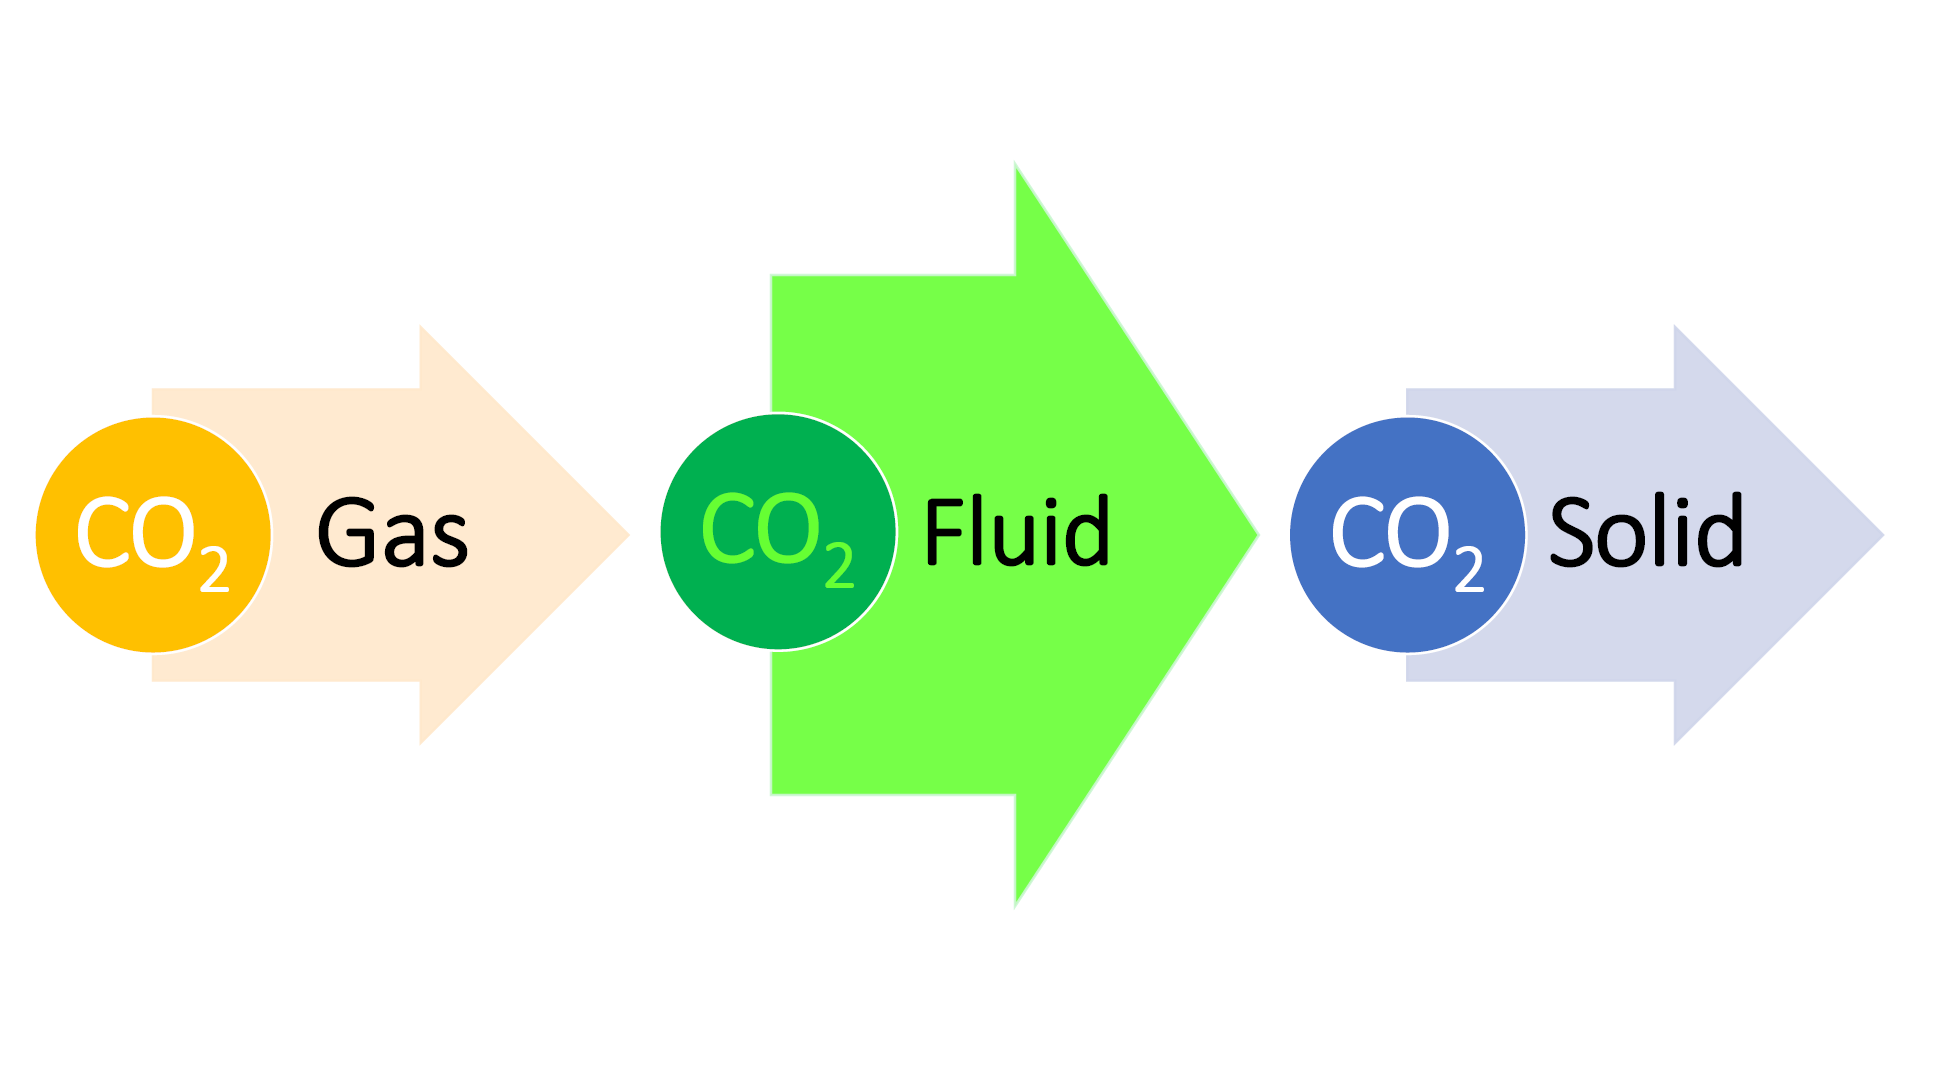 Electrochemical Carbon Dioxide Reduction in Supercritical Carbon Dioxide is Cool